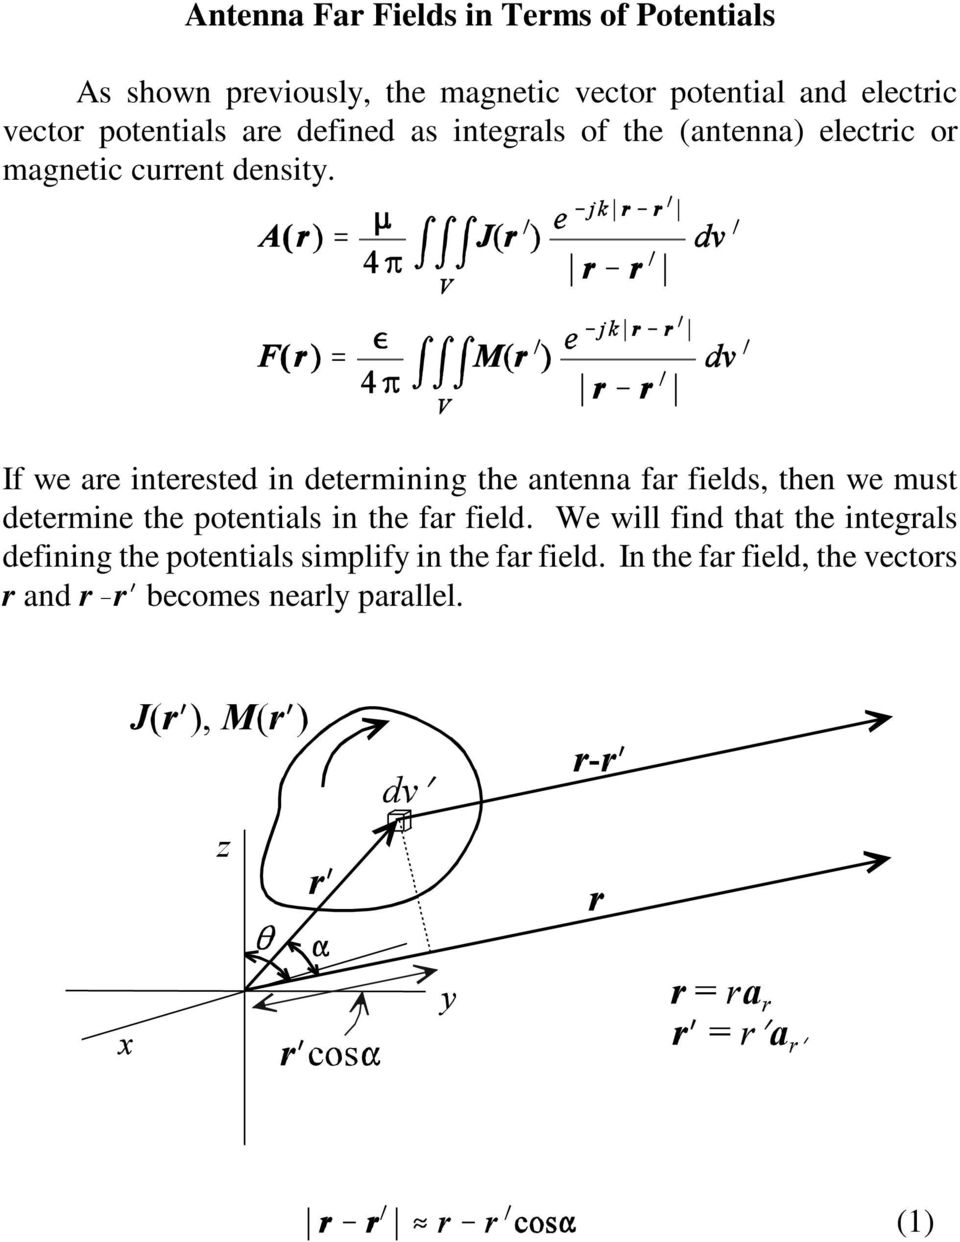 If we are interested in determining the antenna far fields, then we must determine the potentials in the far field.